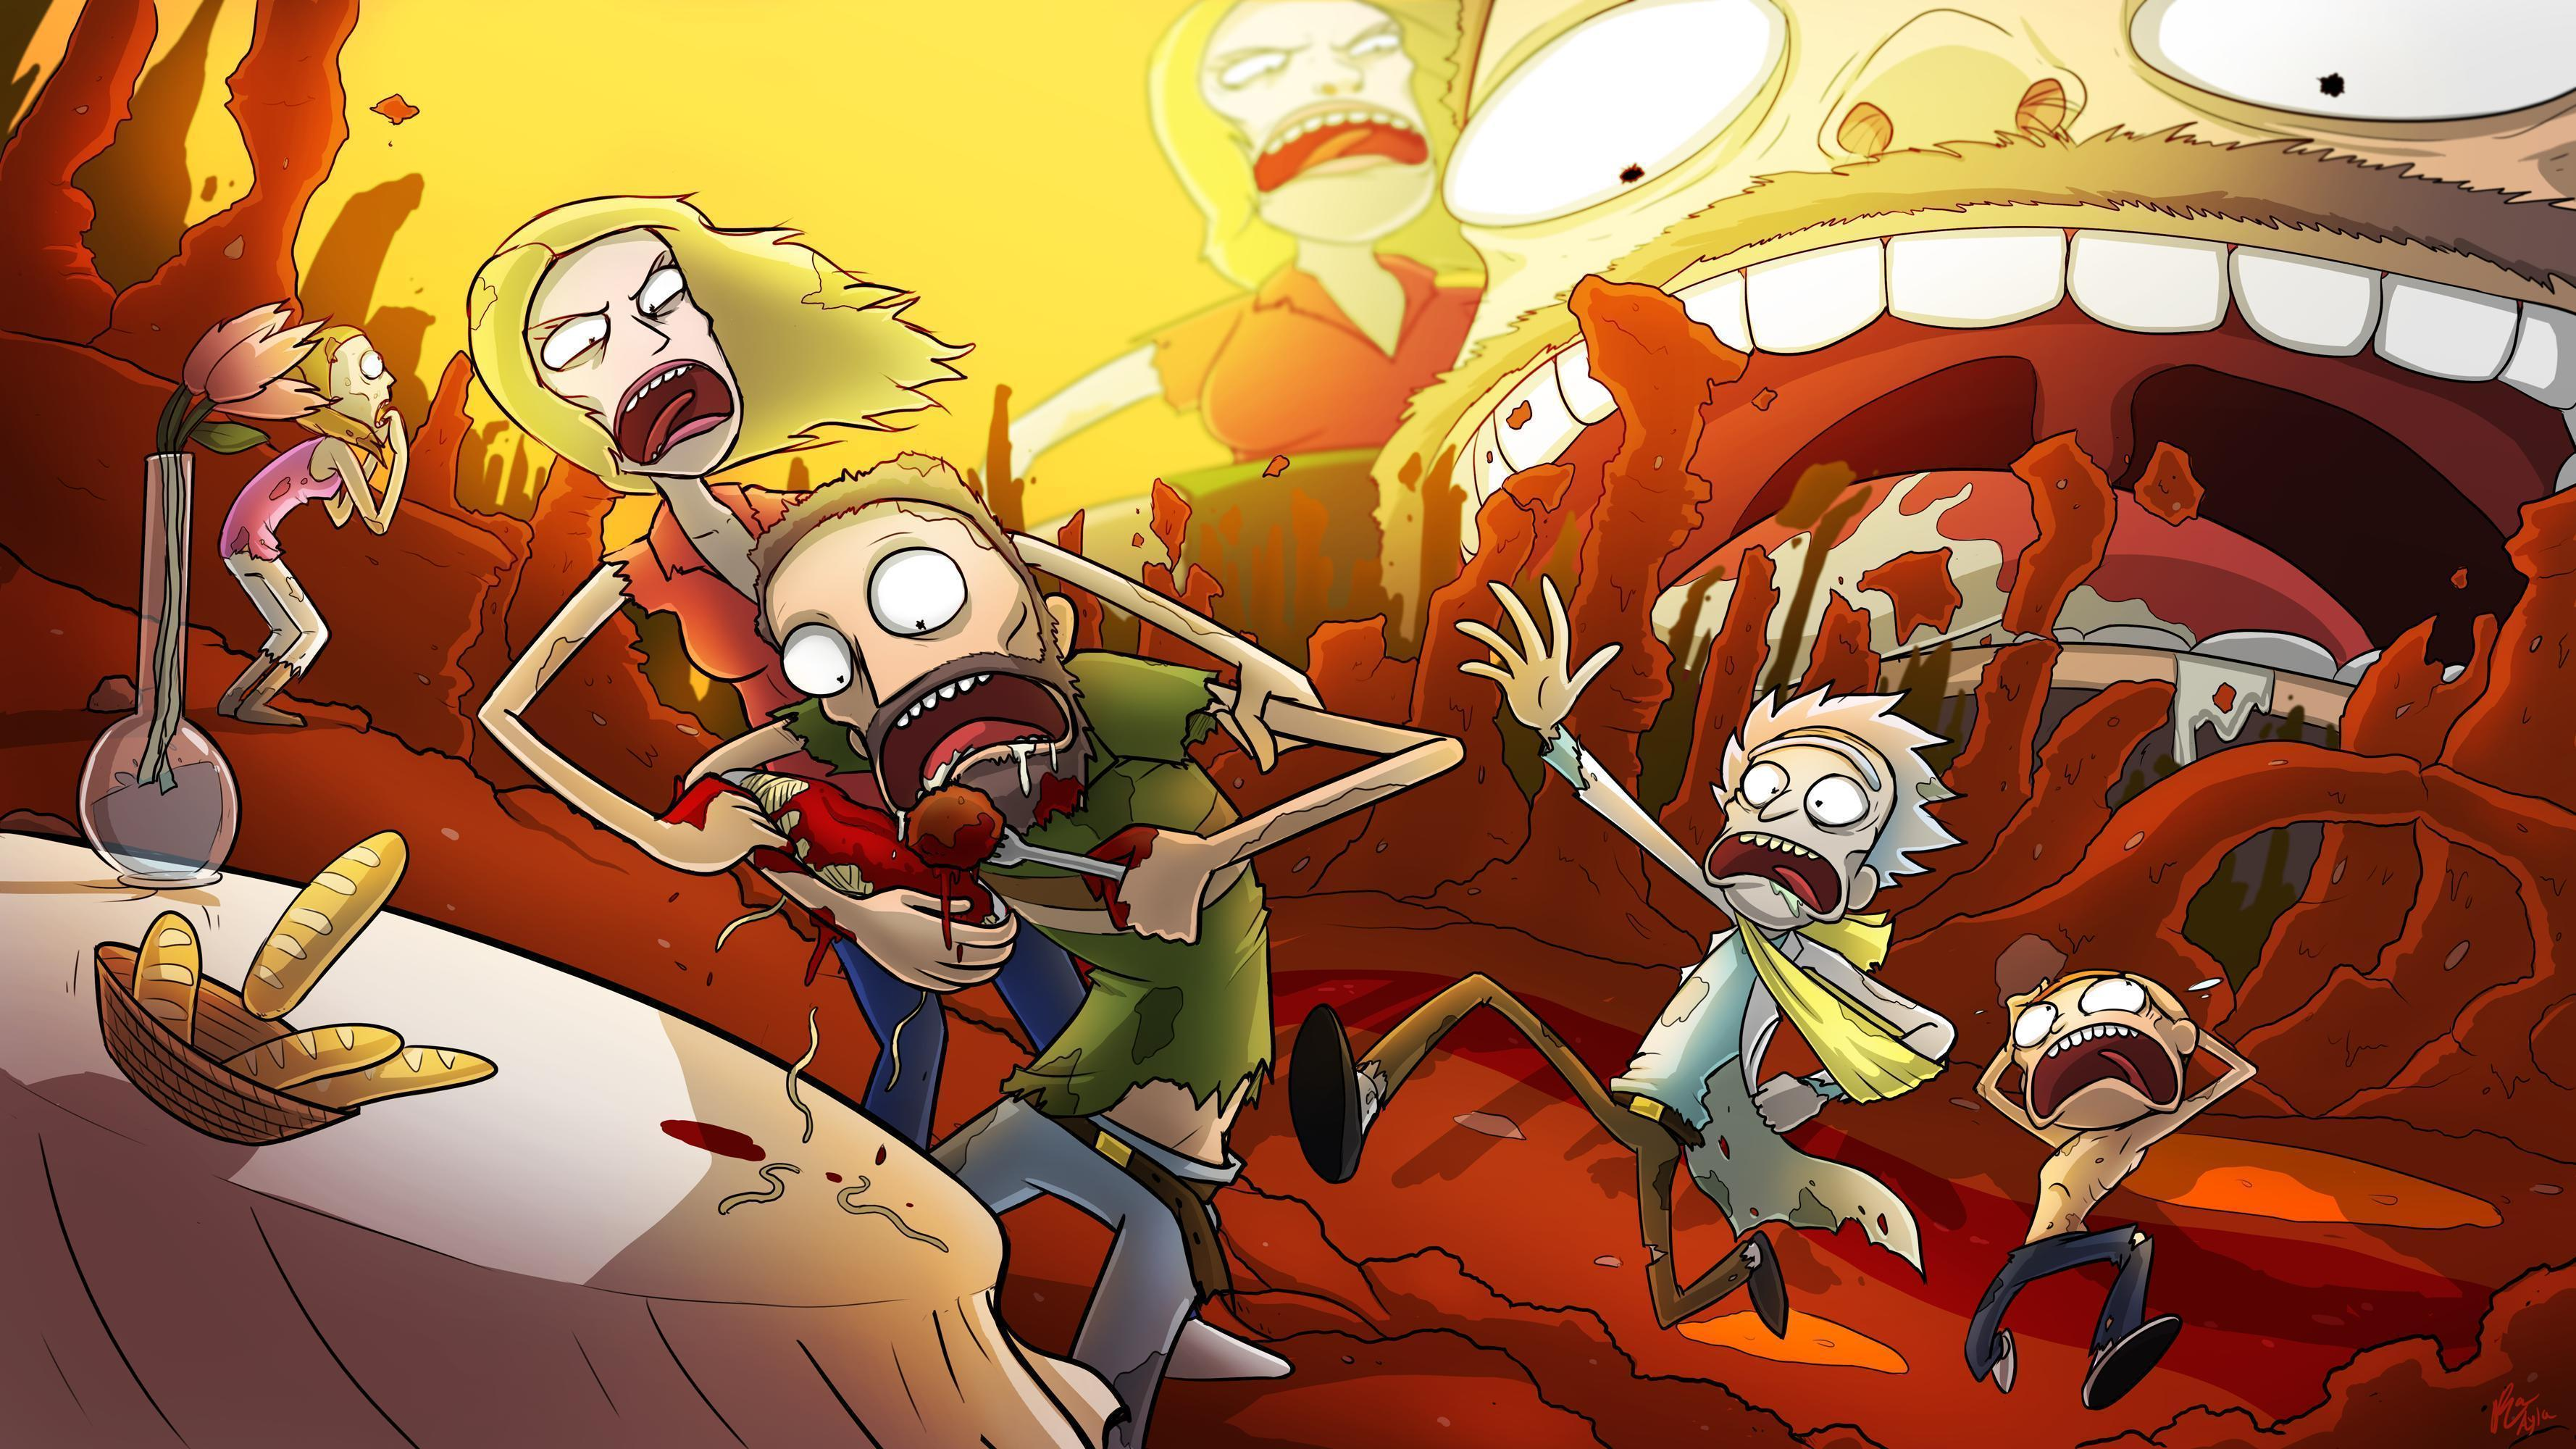 Rick and Morty Wallpaper dump - Album on Imgur